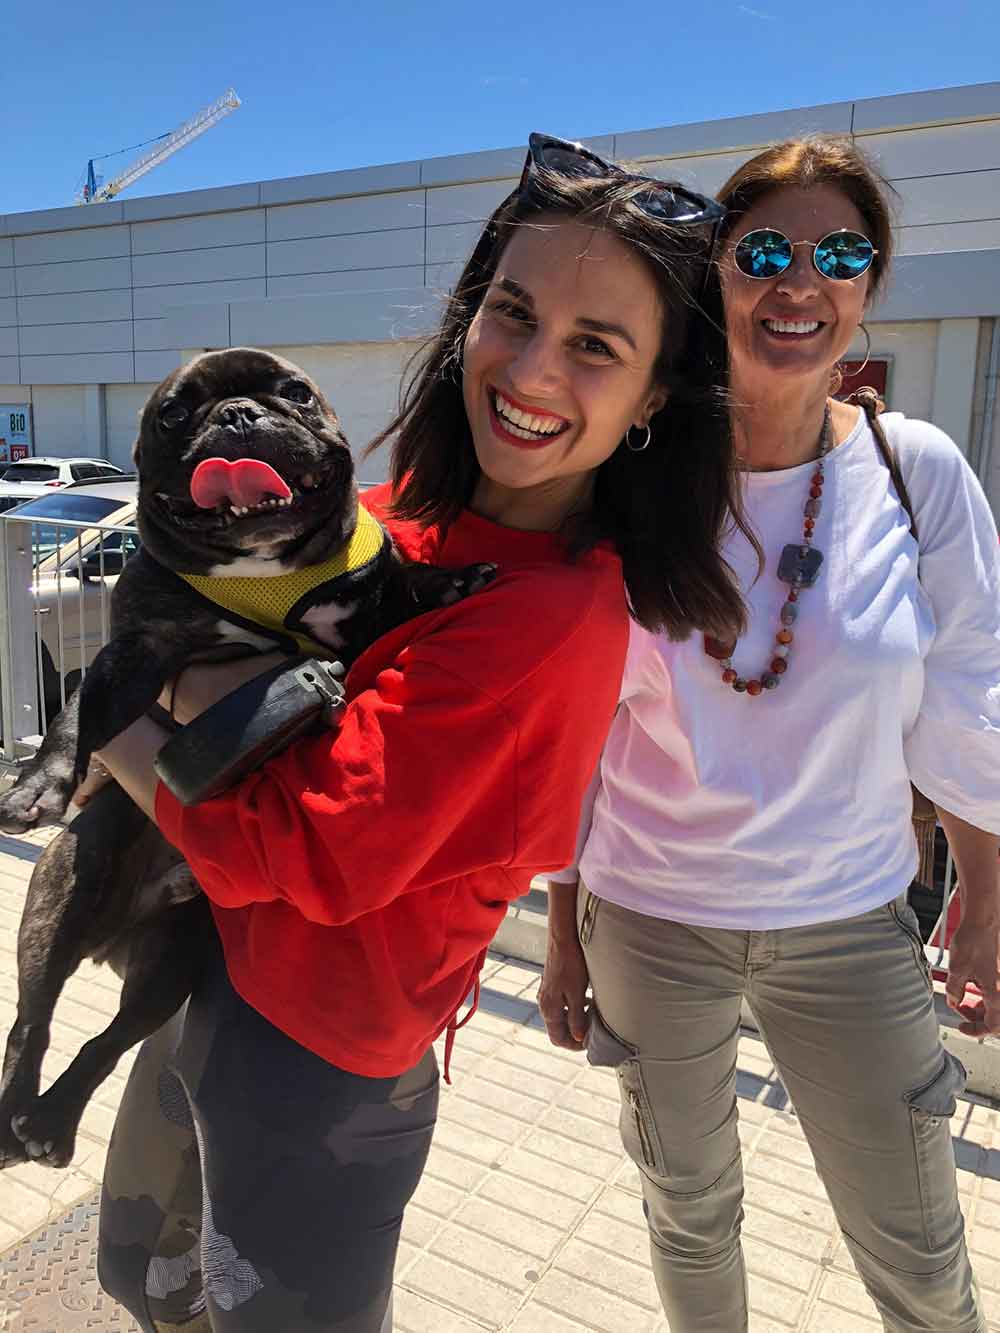 French Bulldog Marley was overjoyed to be back with owner Camila and her mum